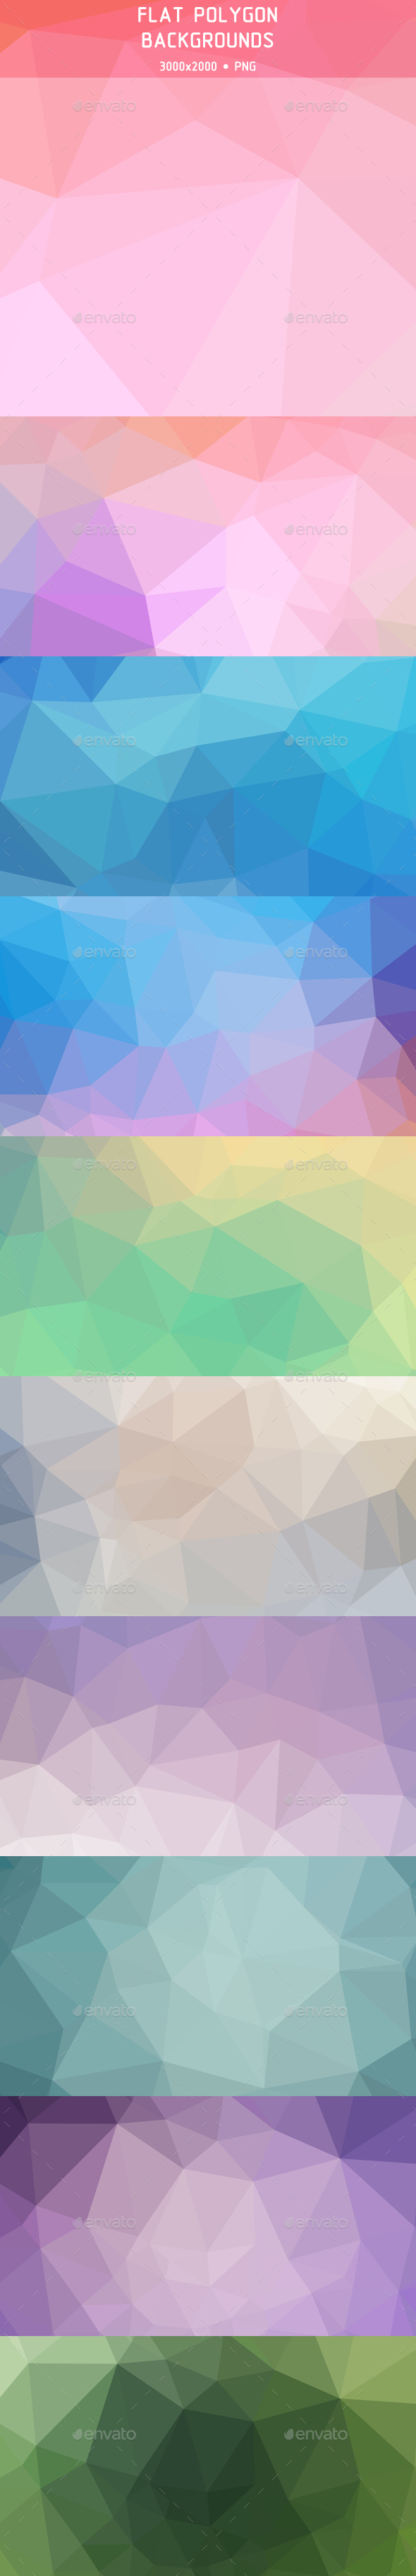 Flat Polygon Backgrounds - Abstract Backgrounds